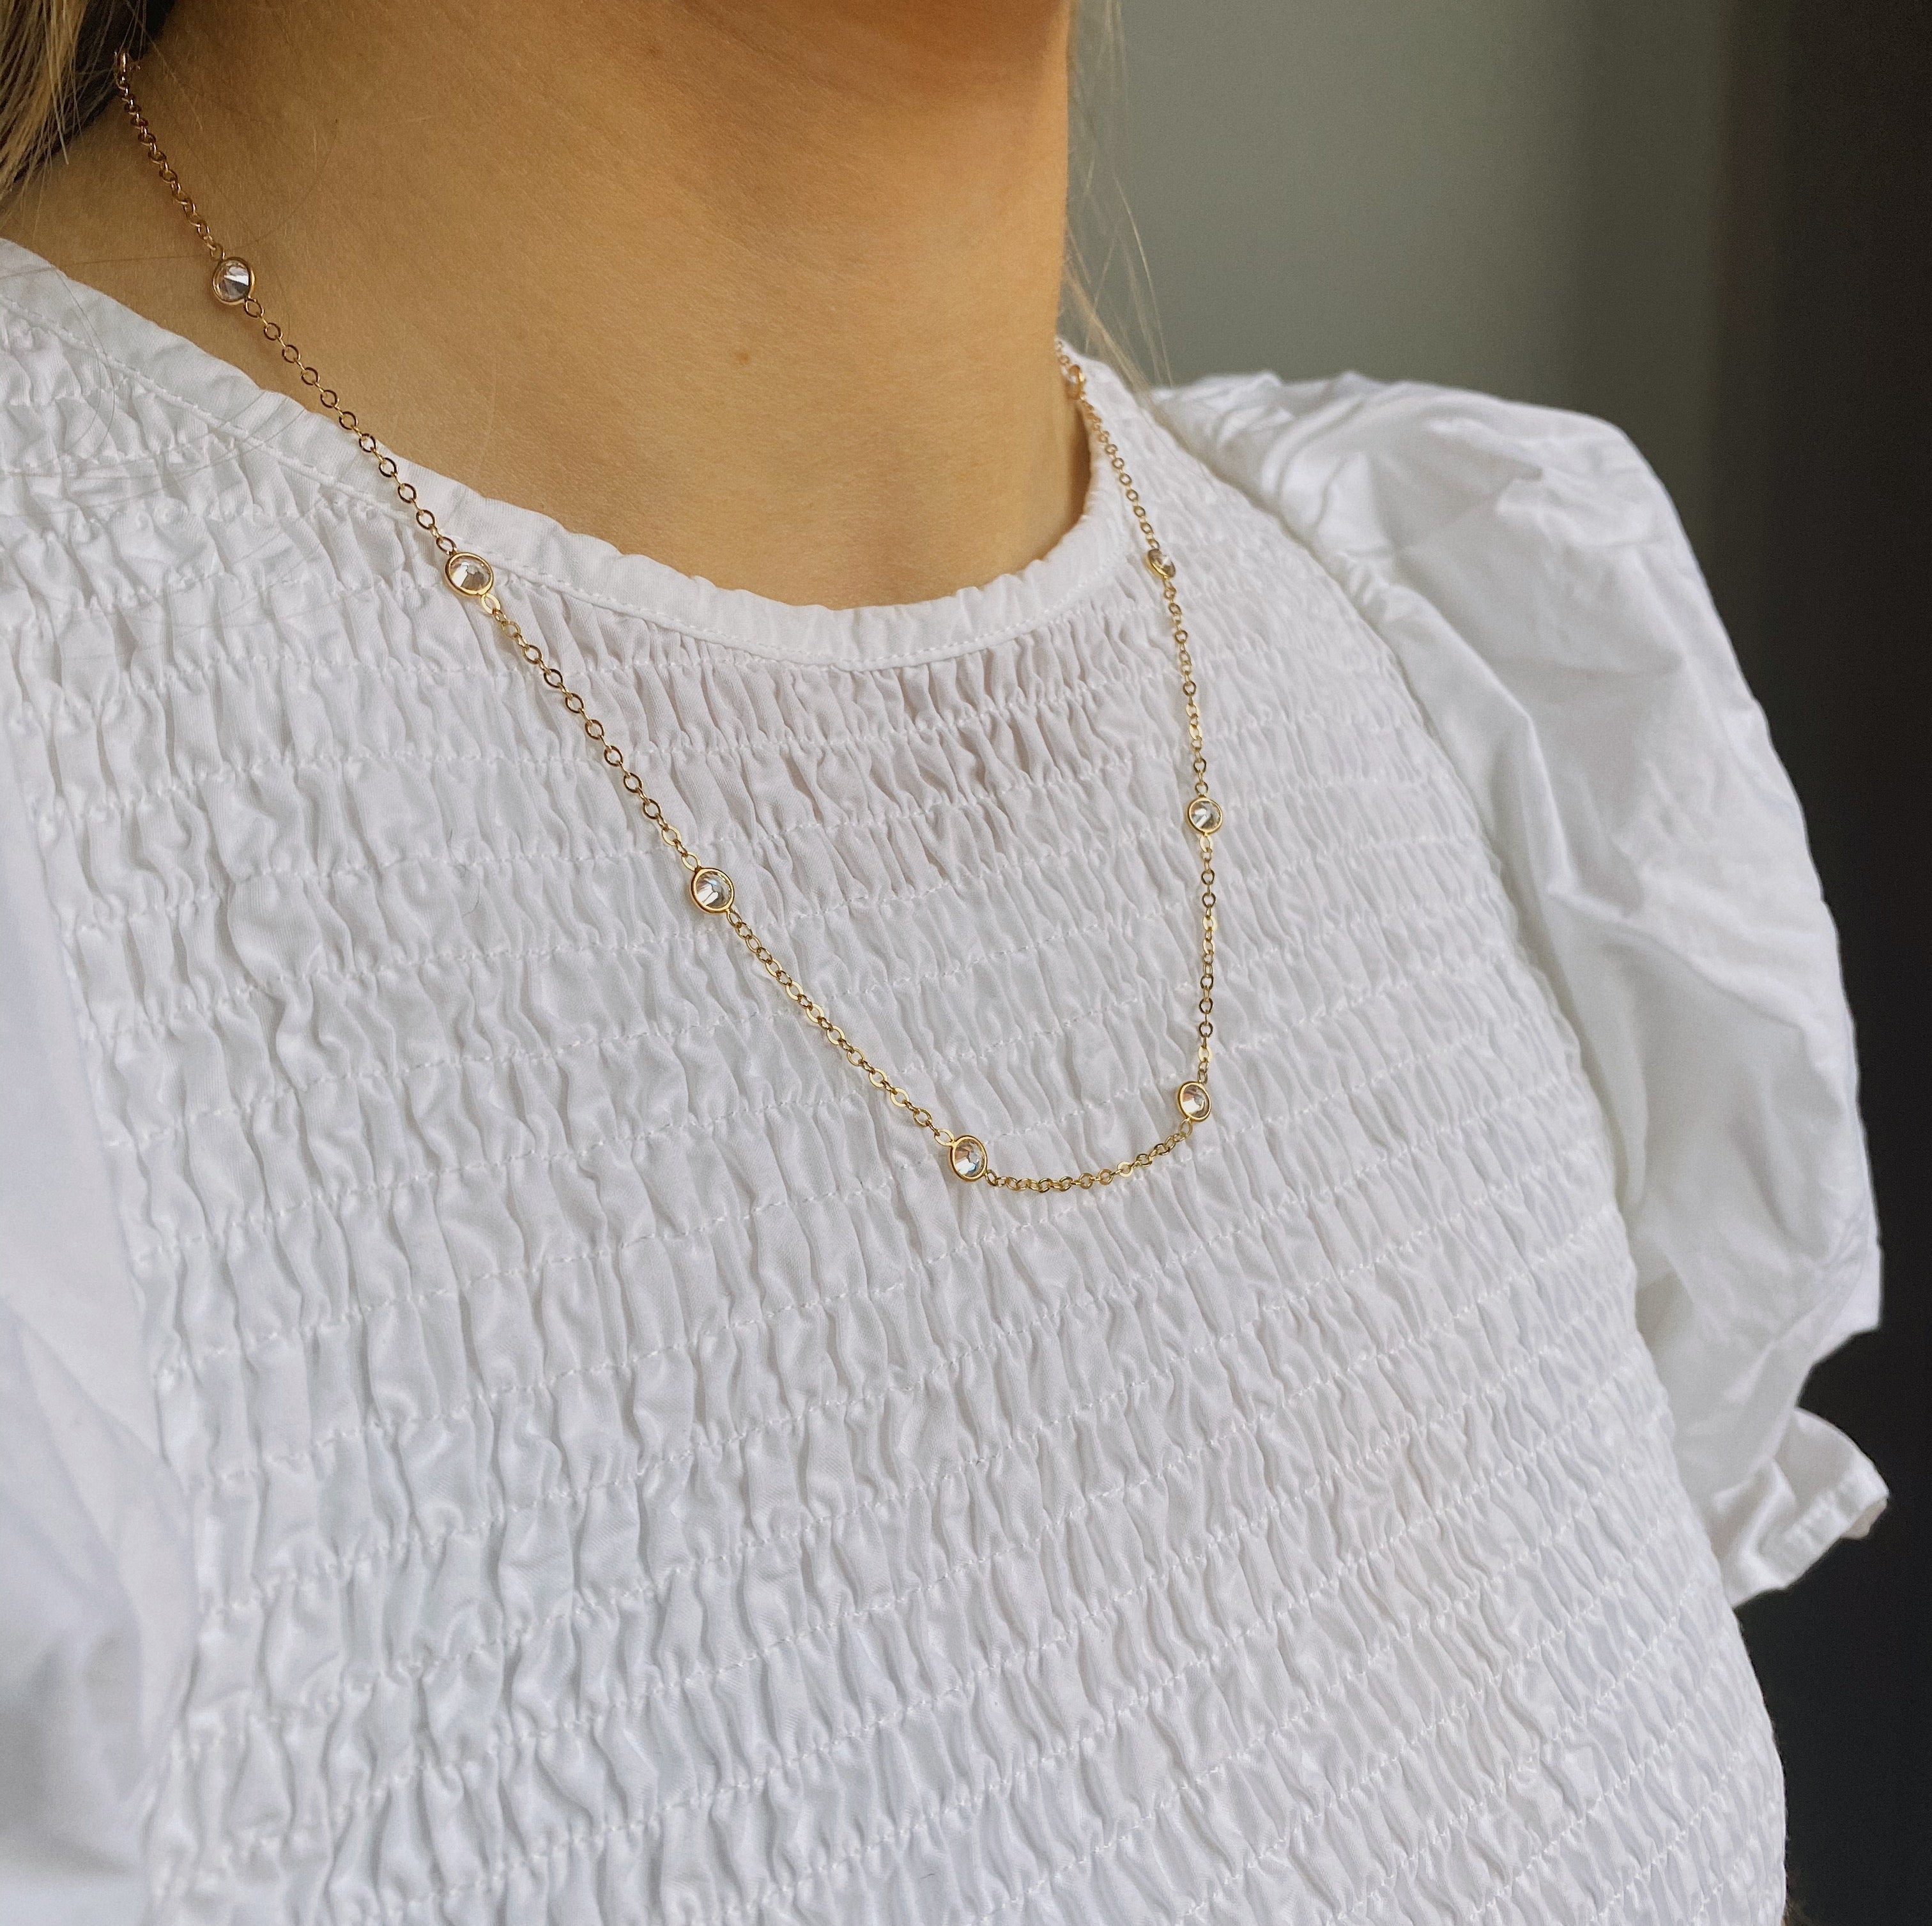 14kt Gold Filled CZ Satellite Necklace